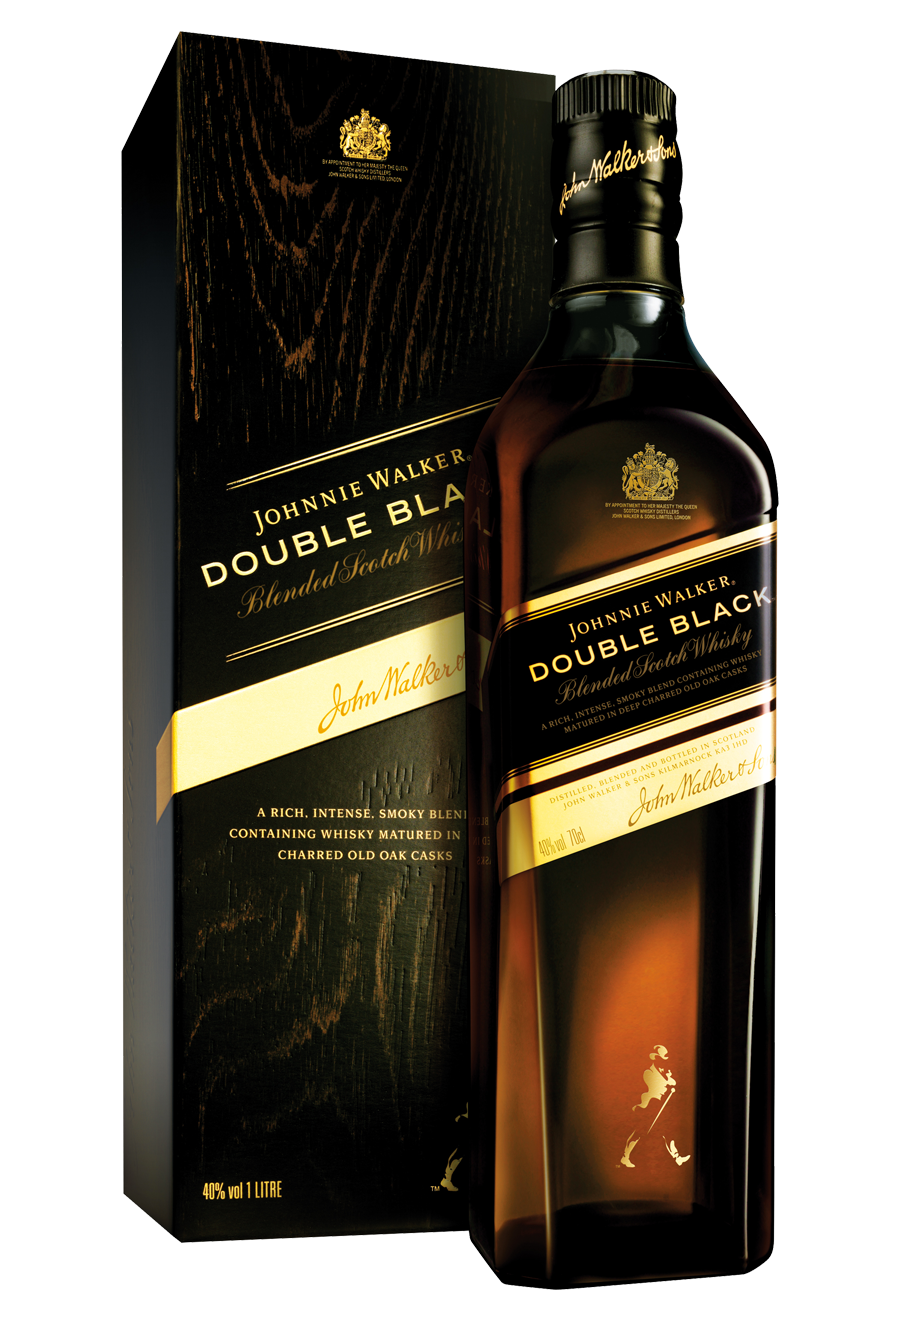 Johnnie Walker Double Black 12 Years Old 0,7l